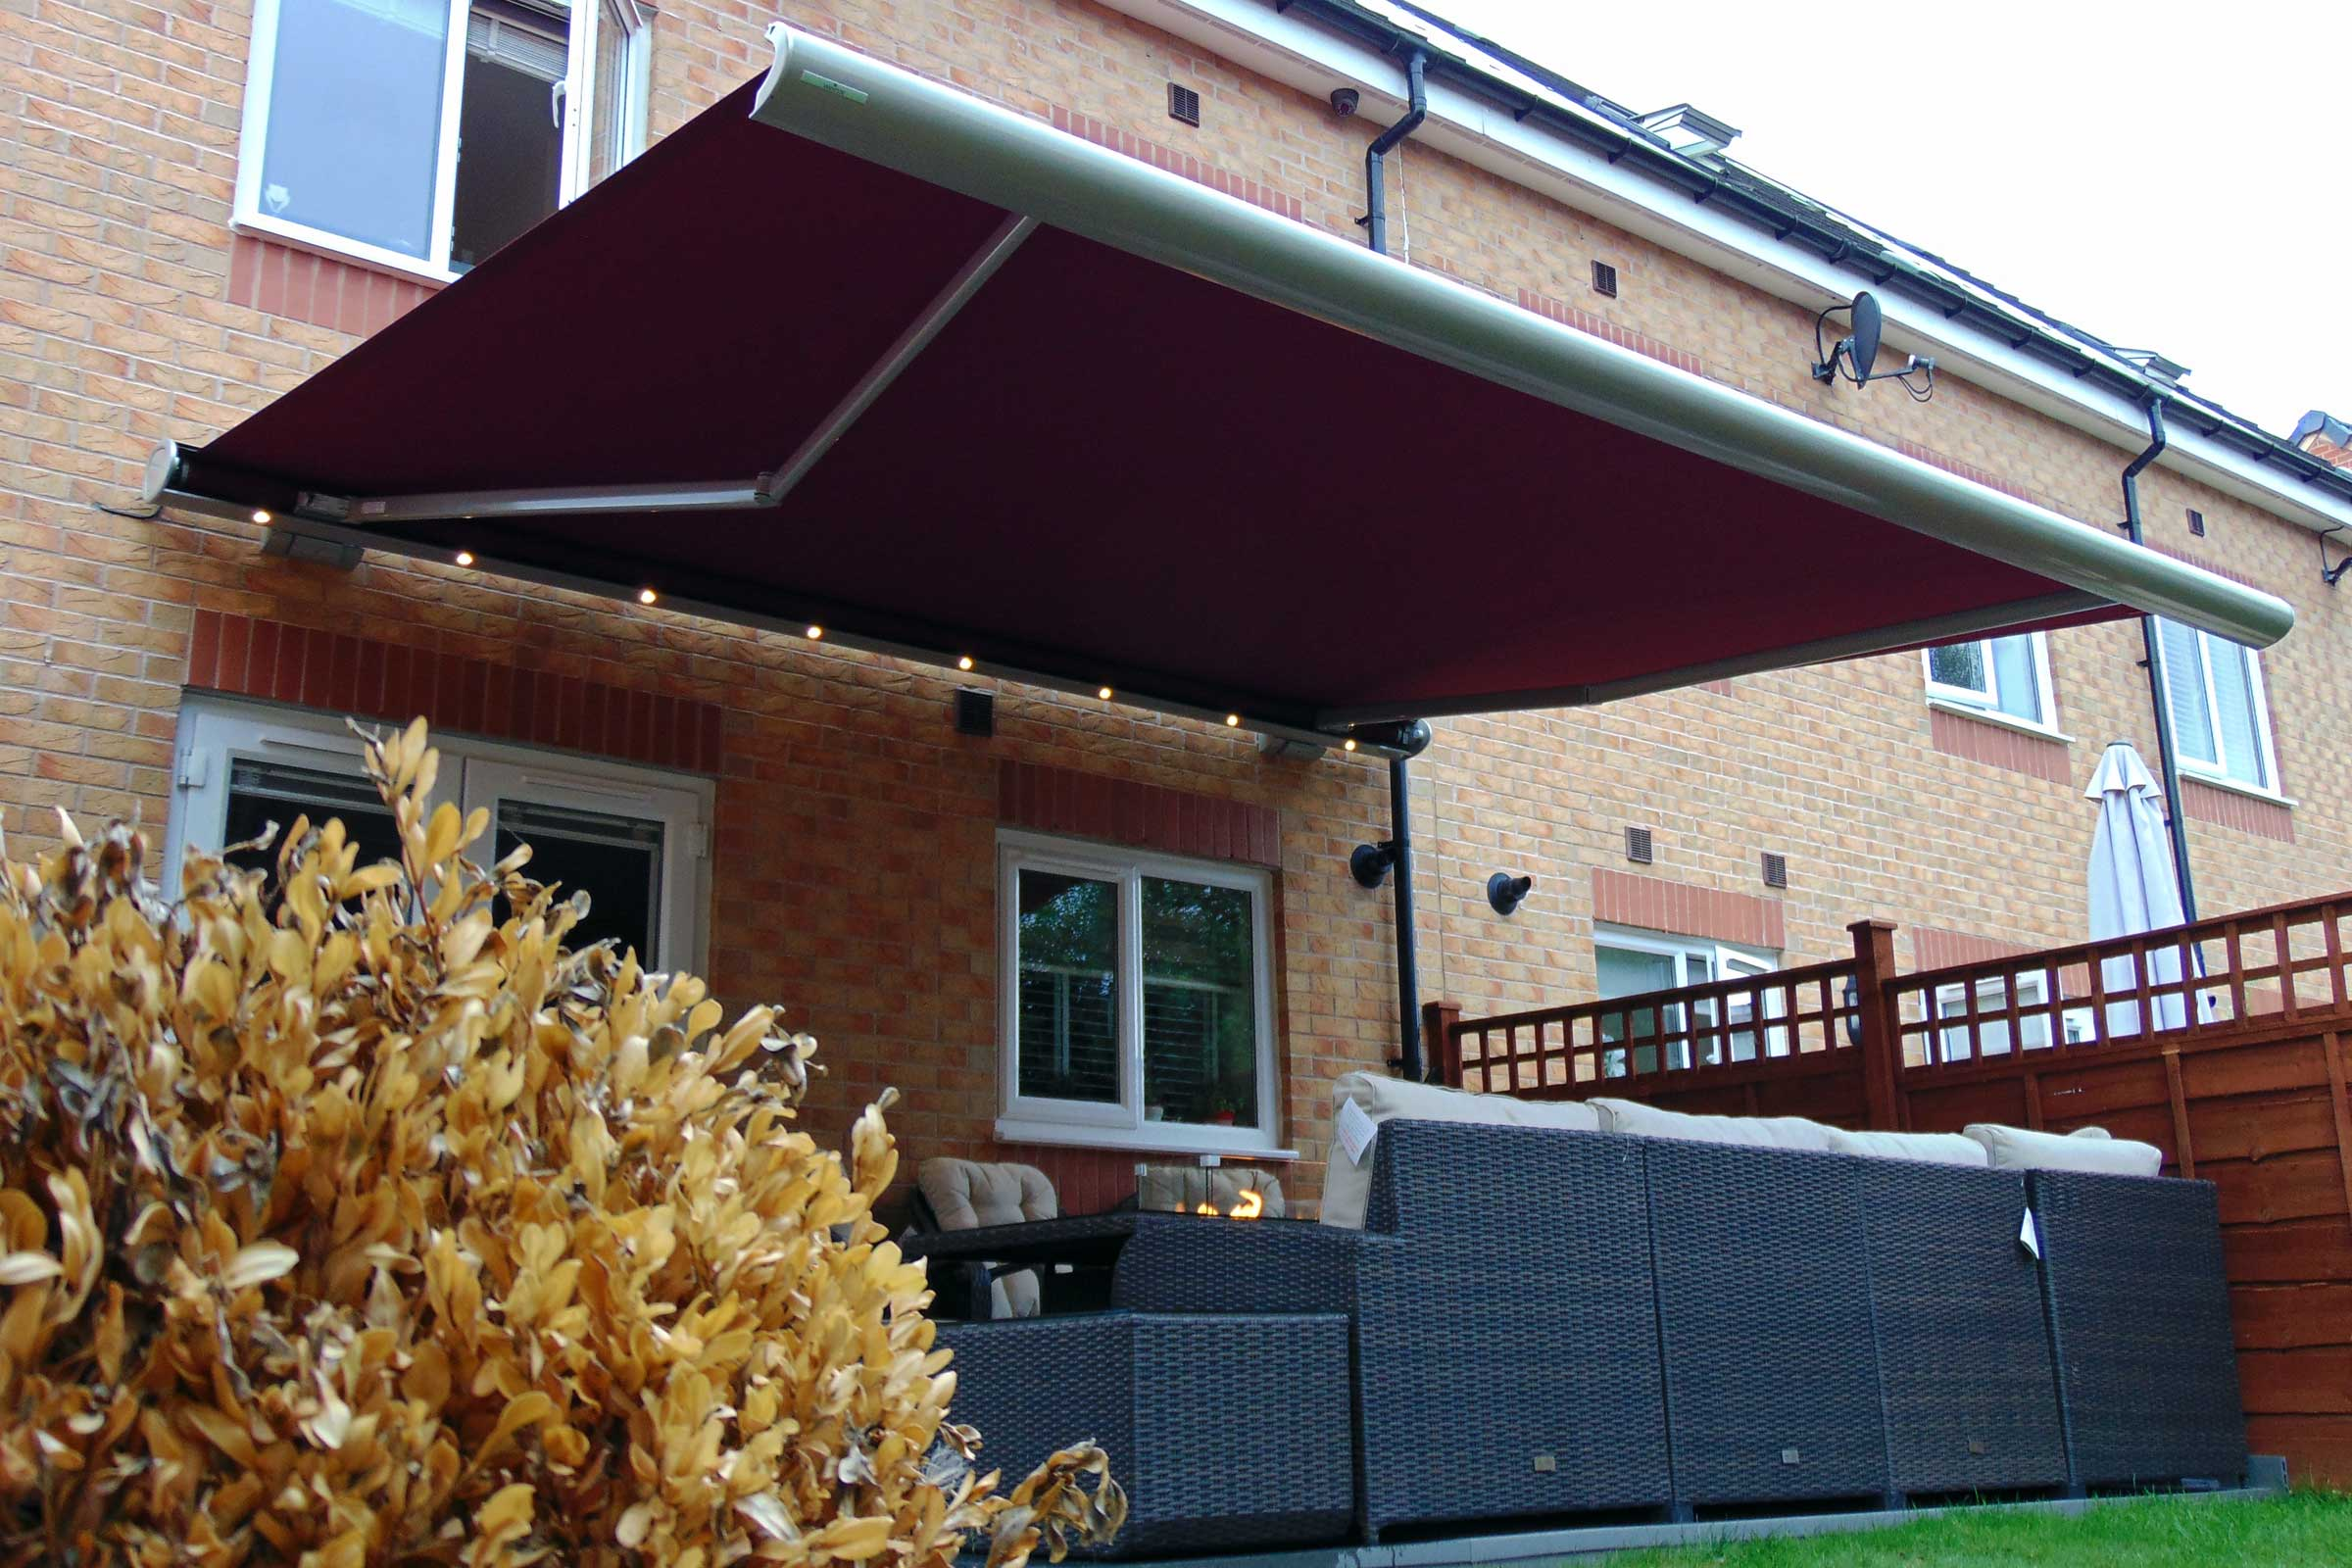 The Semina Life LED awning with red fabric